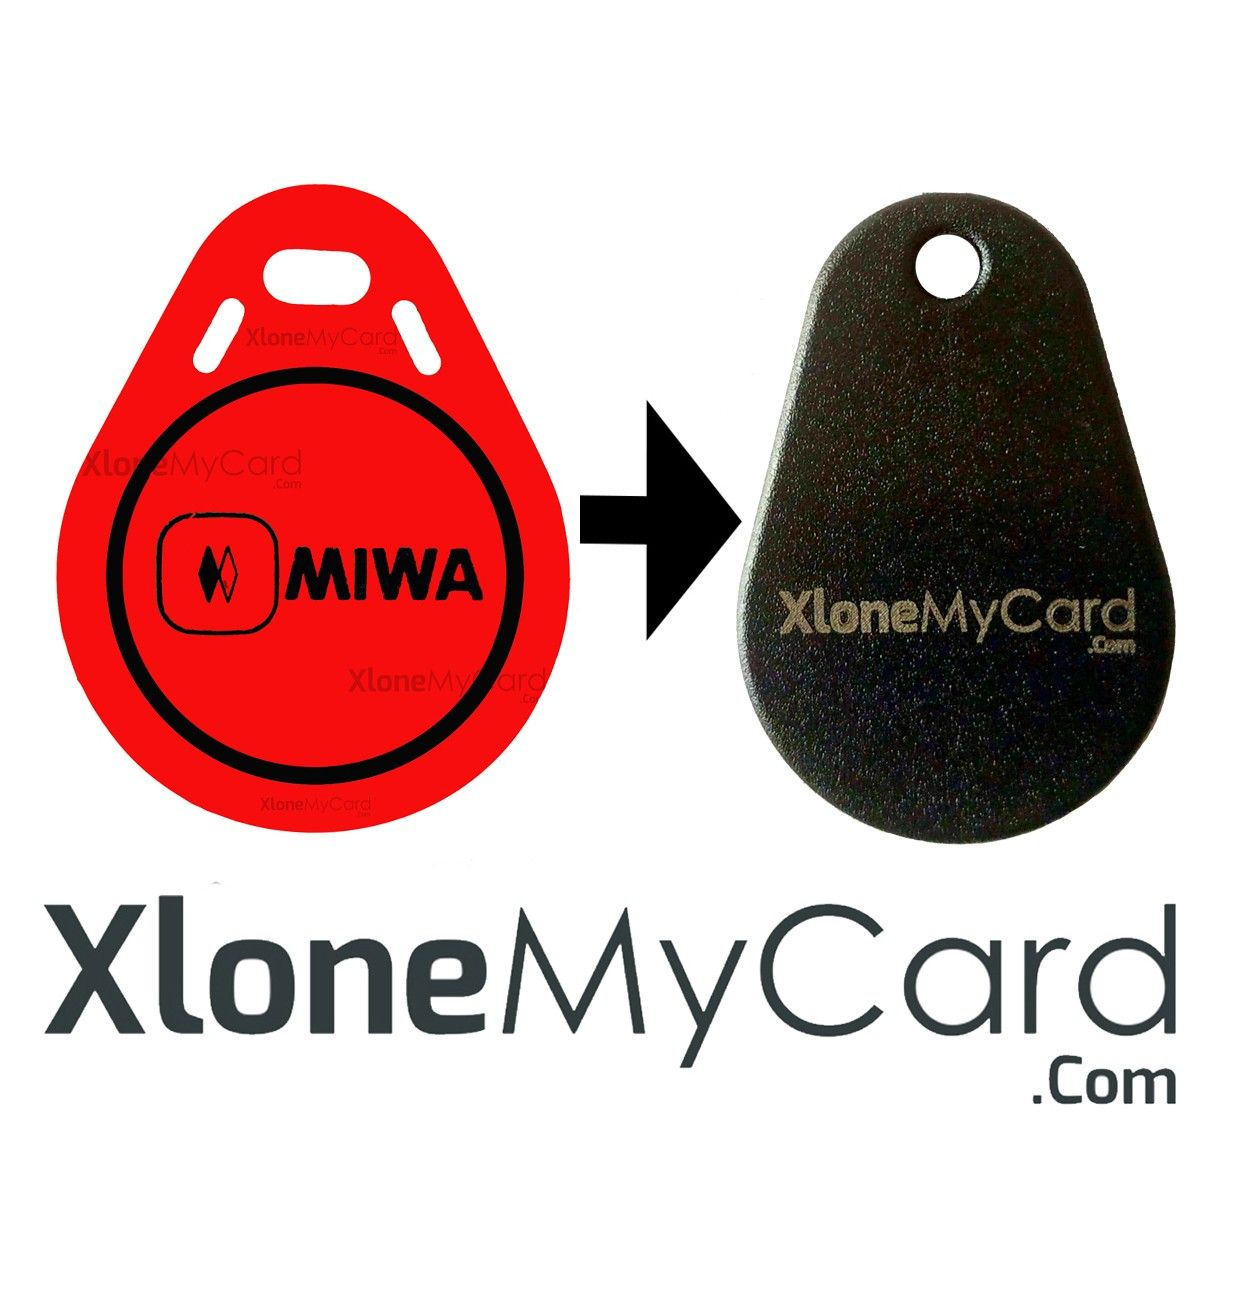 Details about Copy / Clone Miwa Apartment Key Fob | XloneMyCard